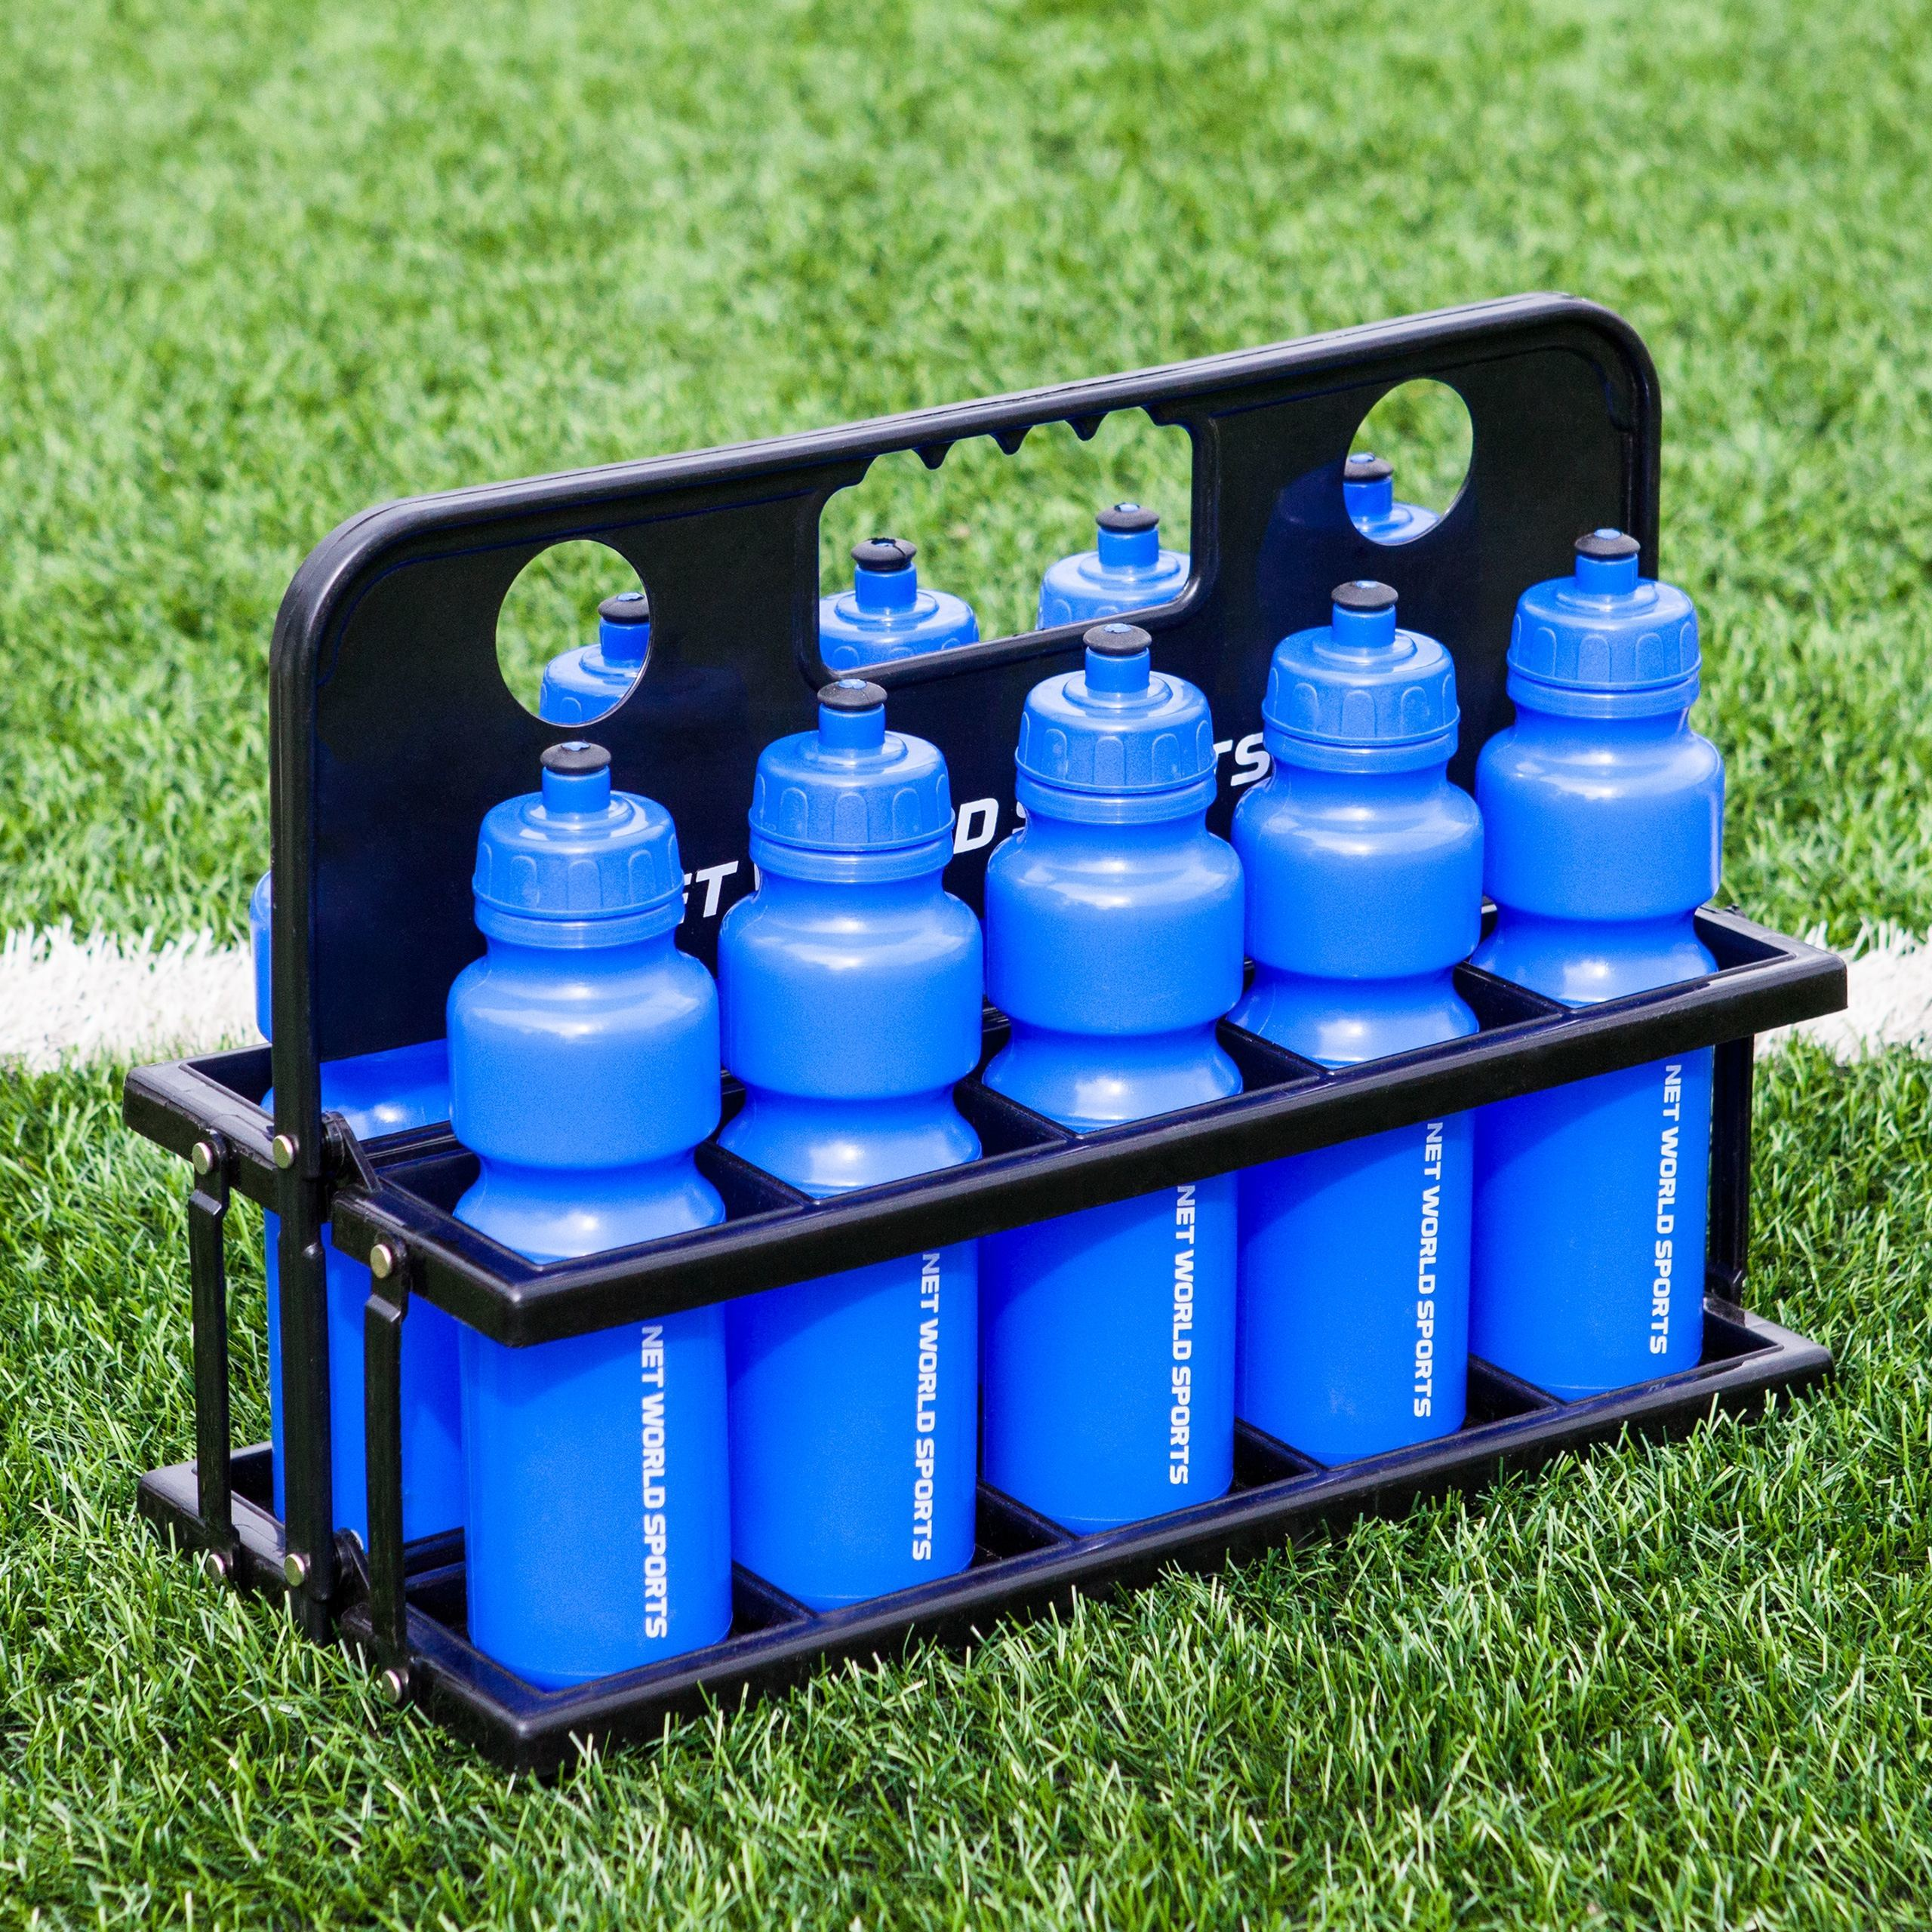 Water Bottle Set: 10 Water Bottles & Folding Drinks Carrier